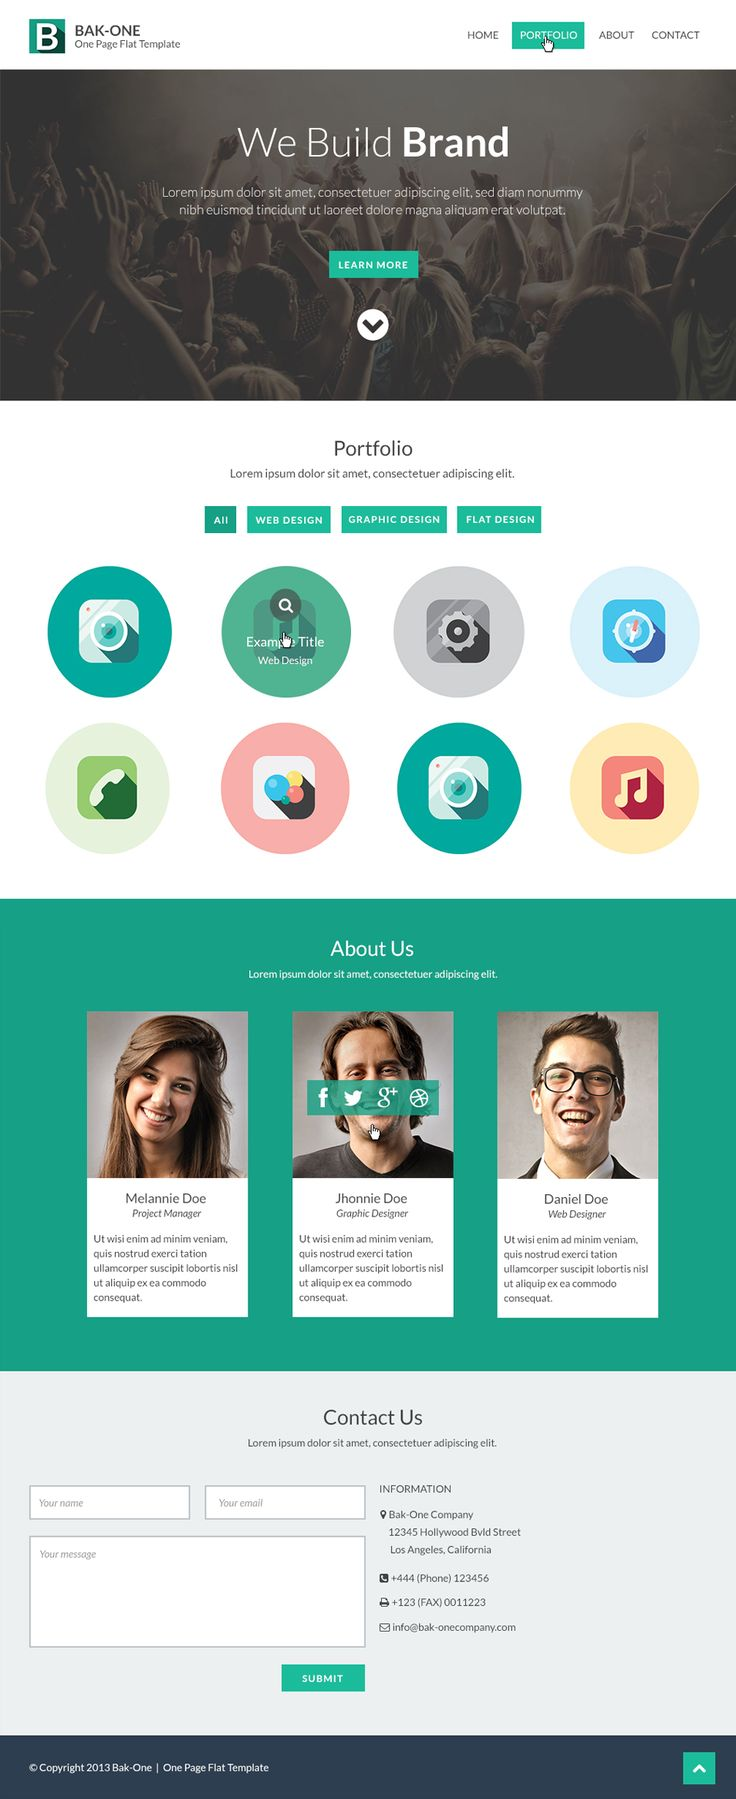 Free Flat Style Single Page Website Design Template PSD